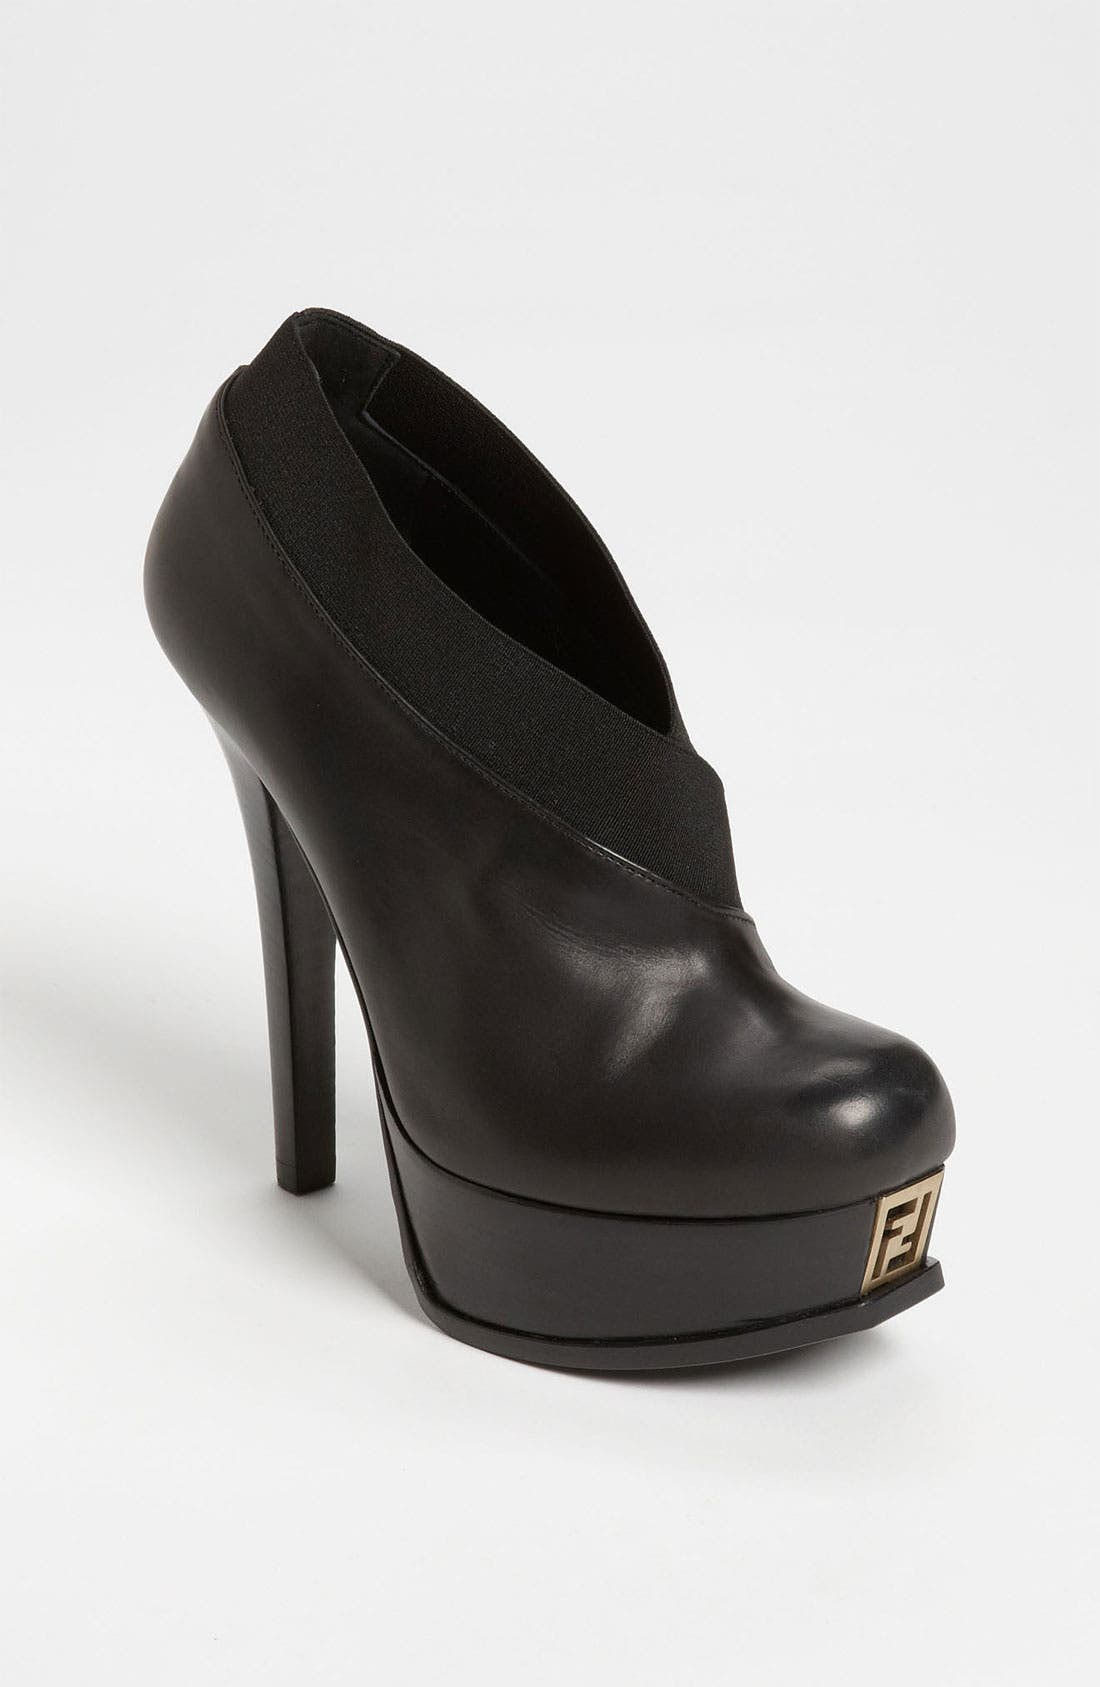 Alternate Image 1 Selected - Fendi 'Fendista' Bootie